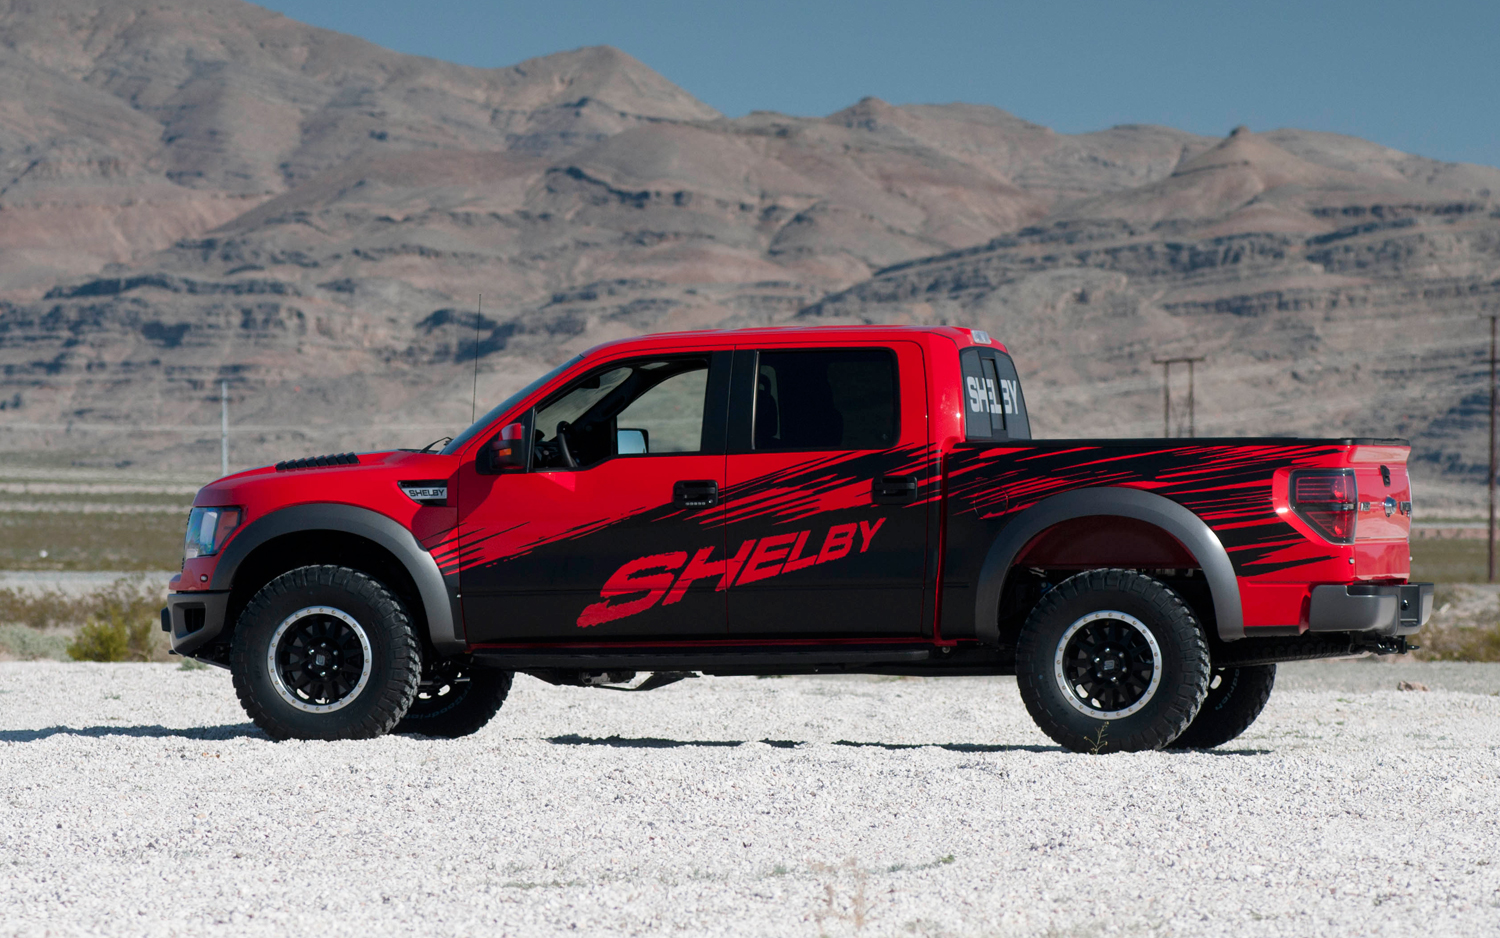 Shelby ford raptor